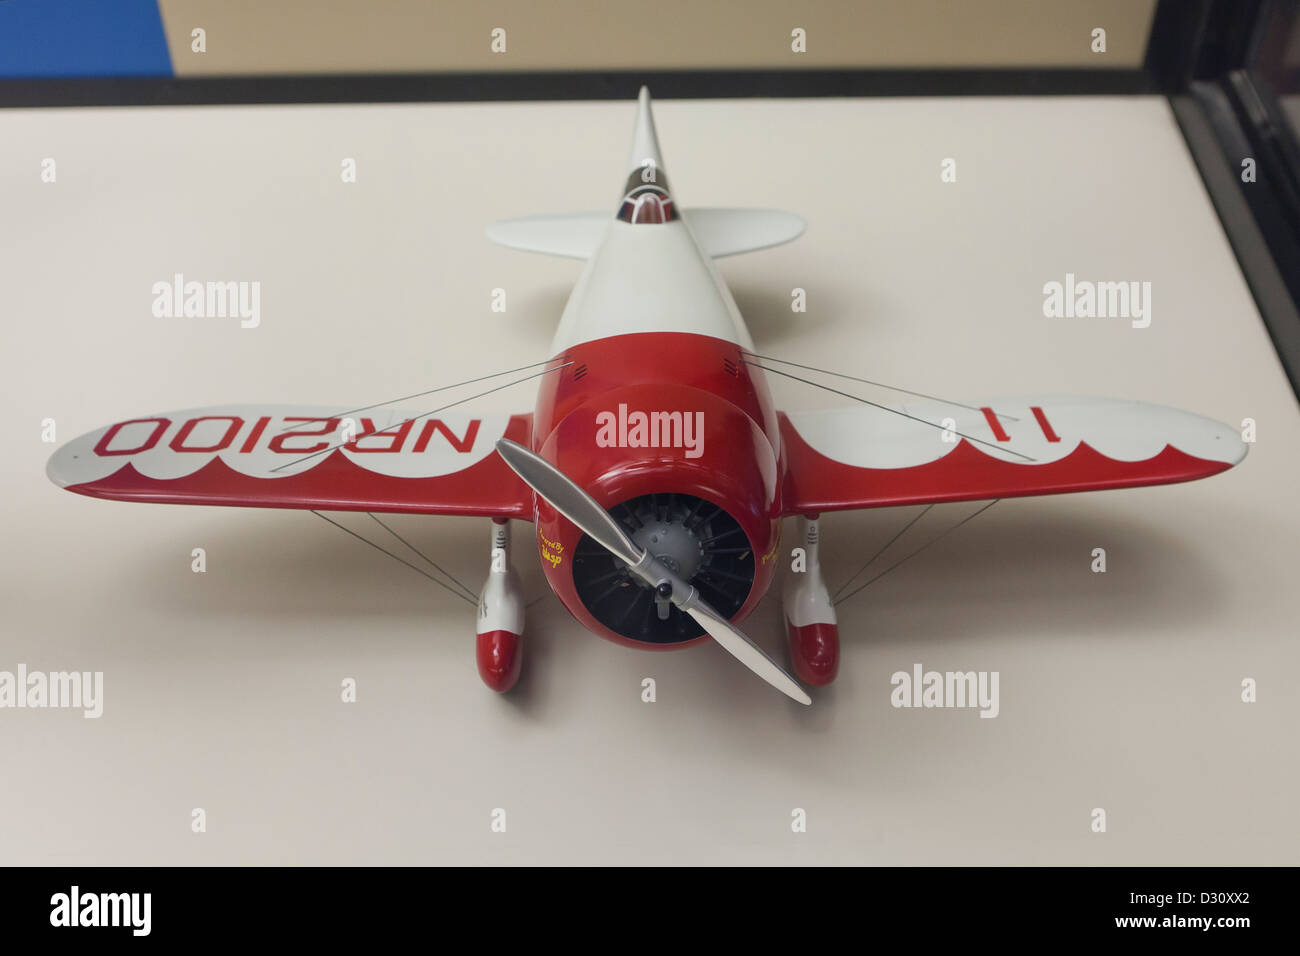 Gee-Bee Super Sportster R-1 airplane model - Stock Image